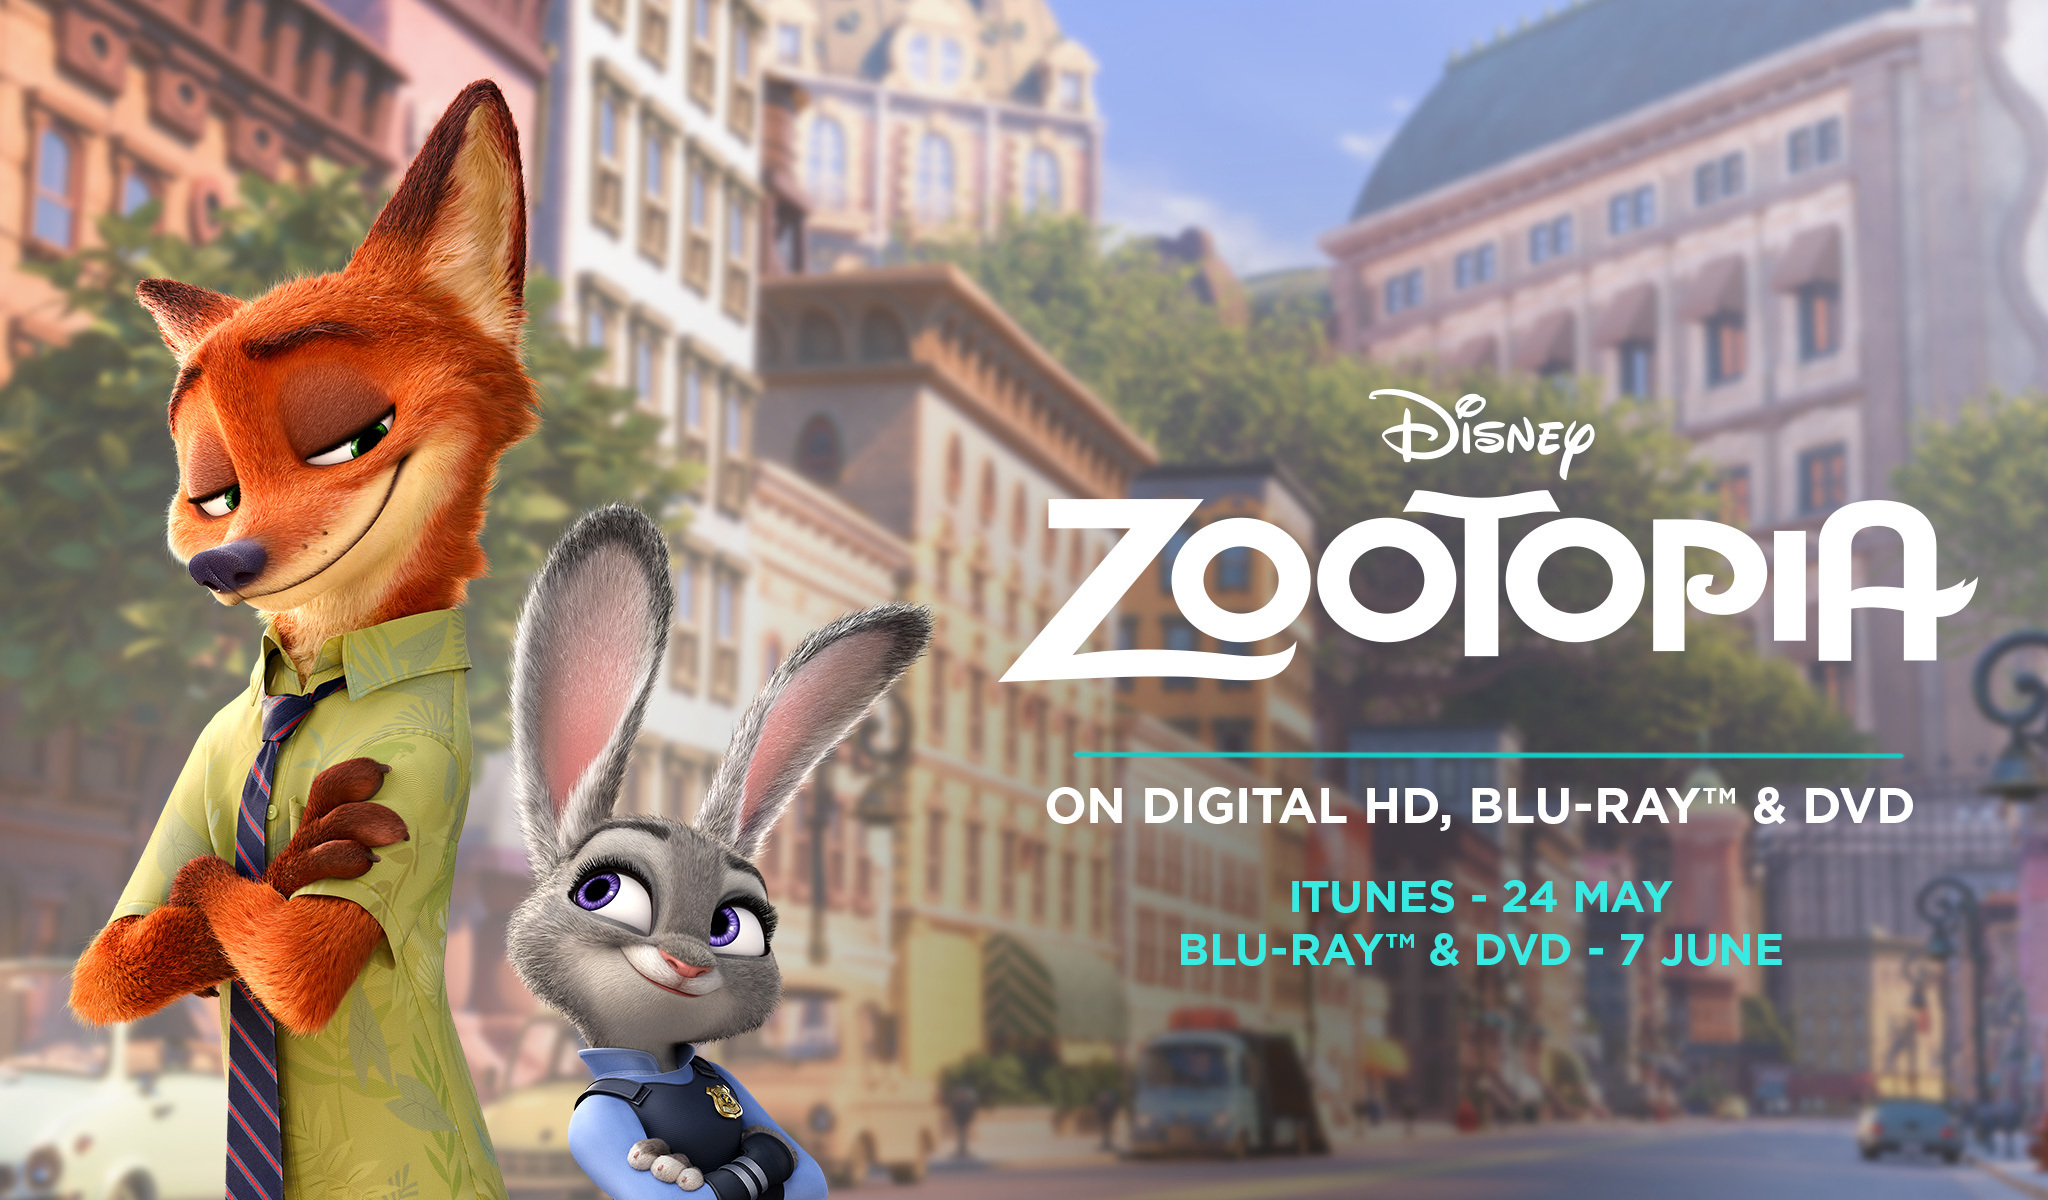 Zootopia On BluRay and Digital HD - SG